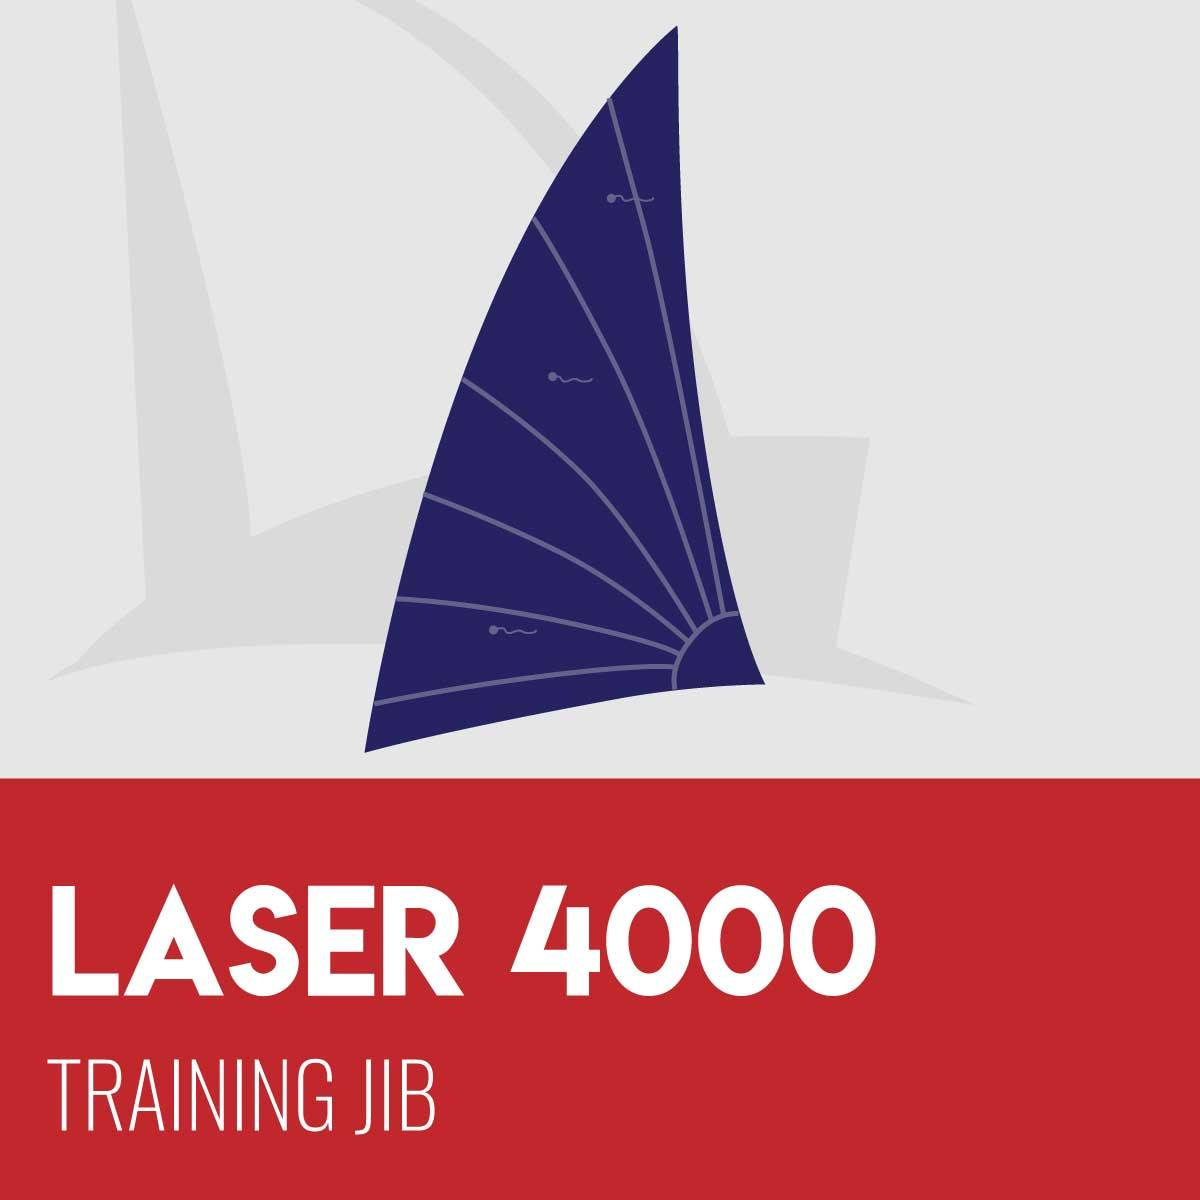 Laser 4000 Training Jib